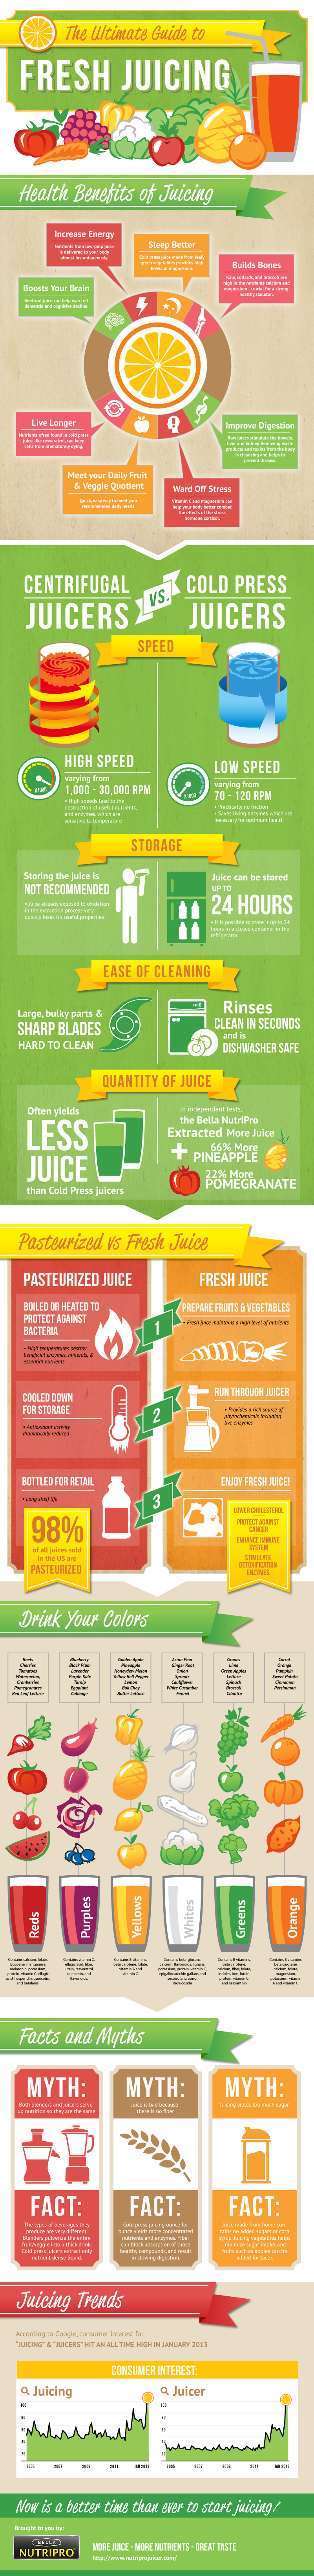 nina_cherie_franklin_ultimate_guide_fresh_juicing_infographic